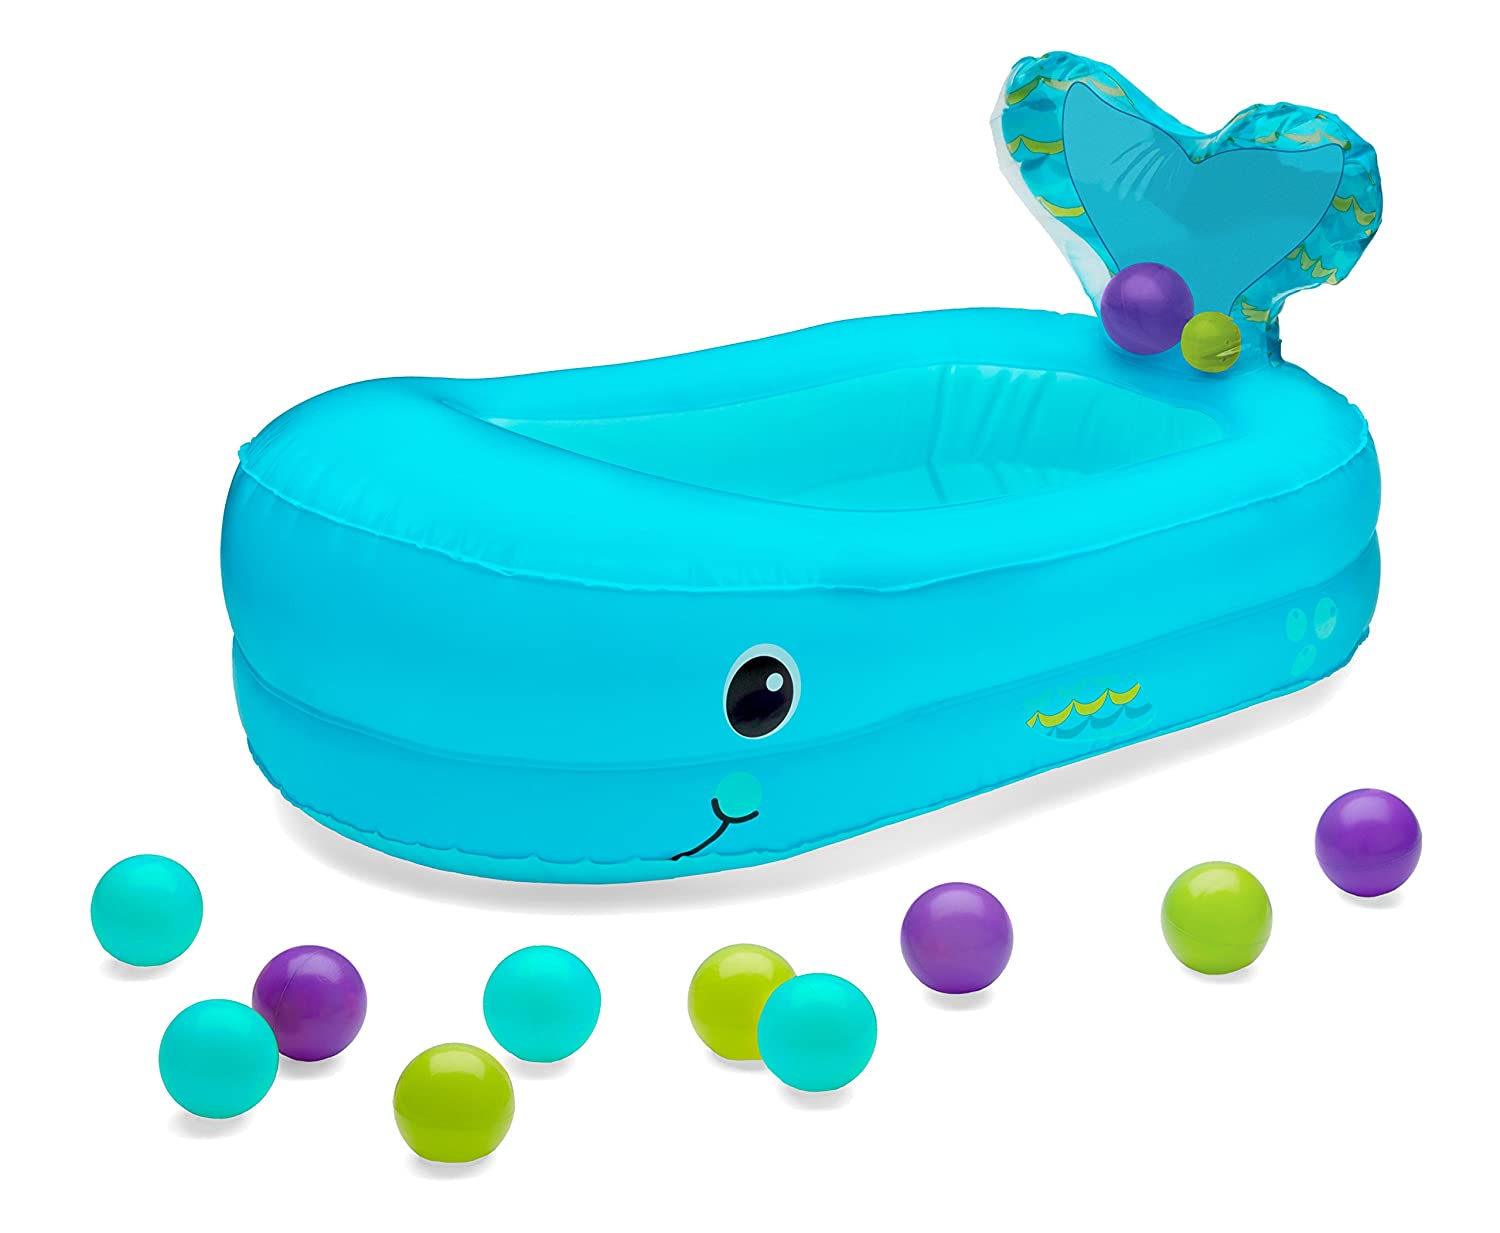 Amazon.com : Infantino Whale Bubble Inflatable Bath Tub and Ball Set ...